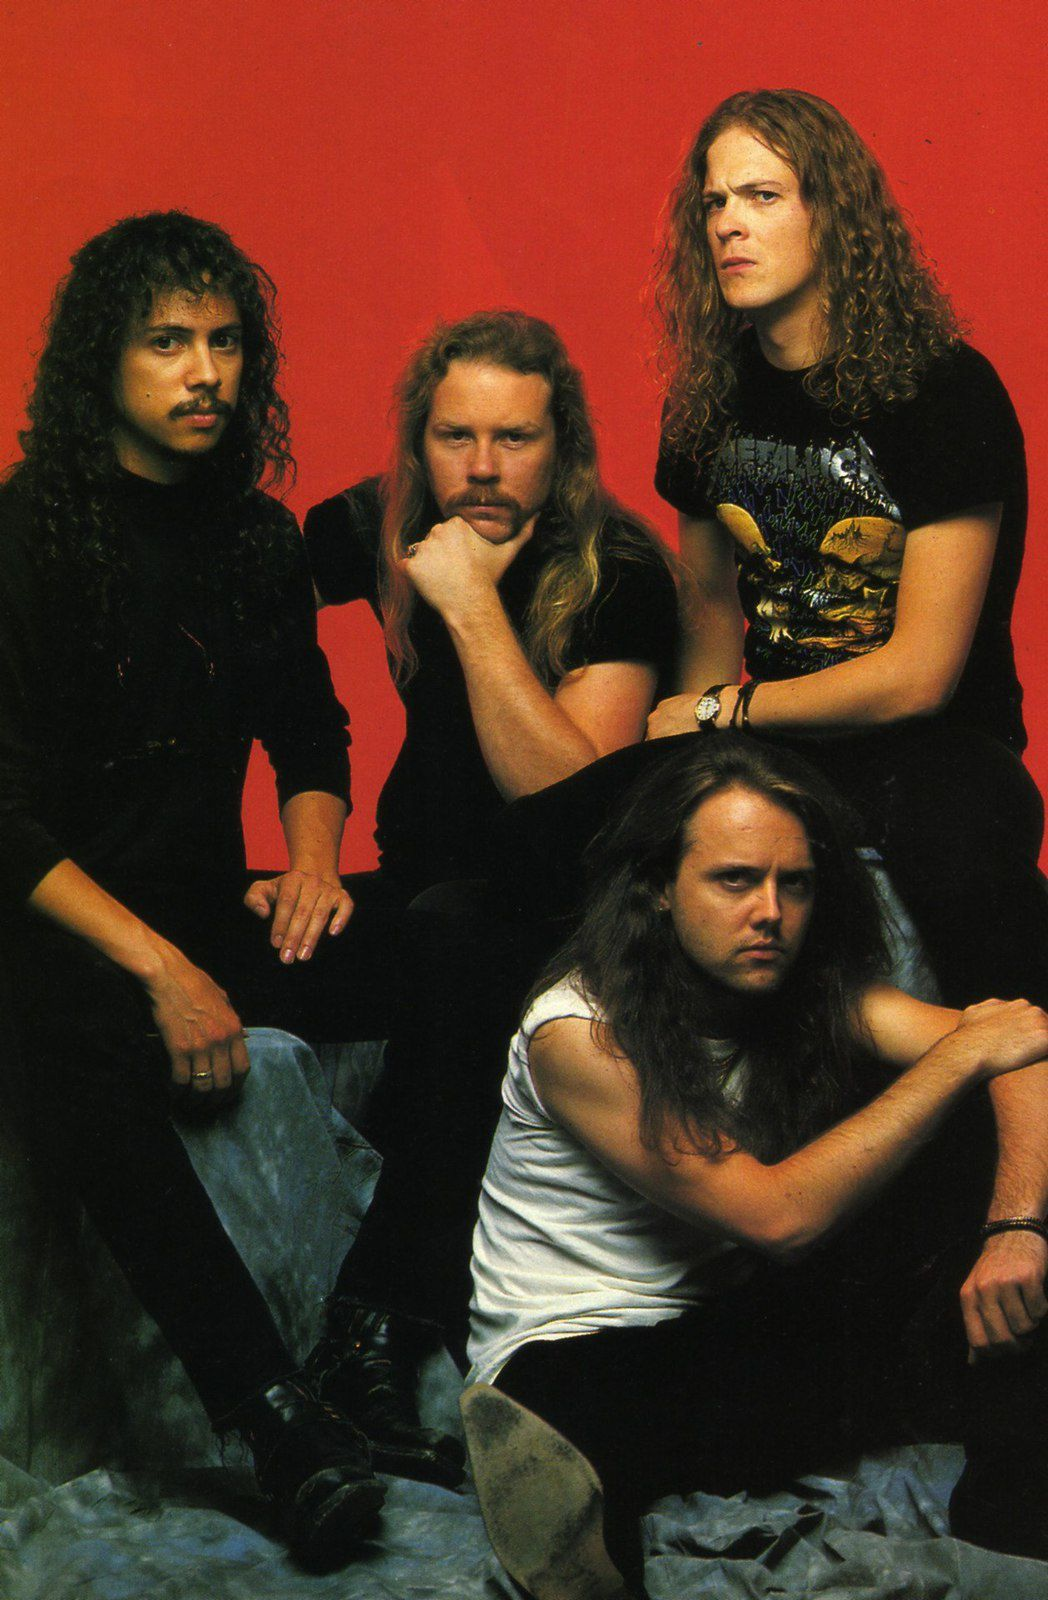 Jason Newsted, James Hetfield, Lars Ulrich and Kirk Hammett - Metallica (1986–2001)